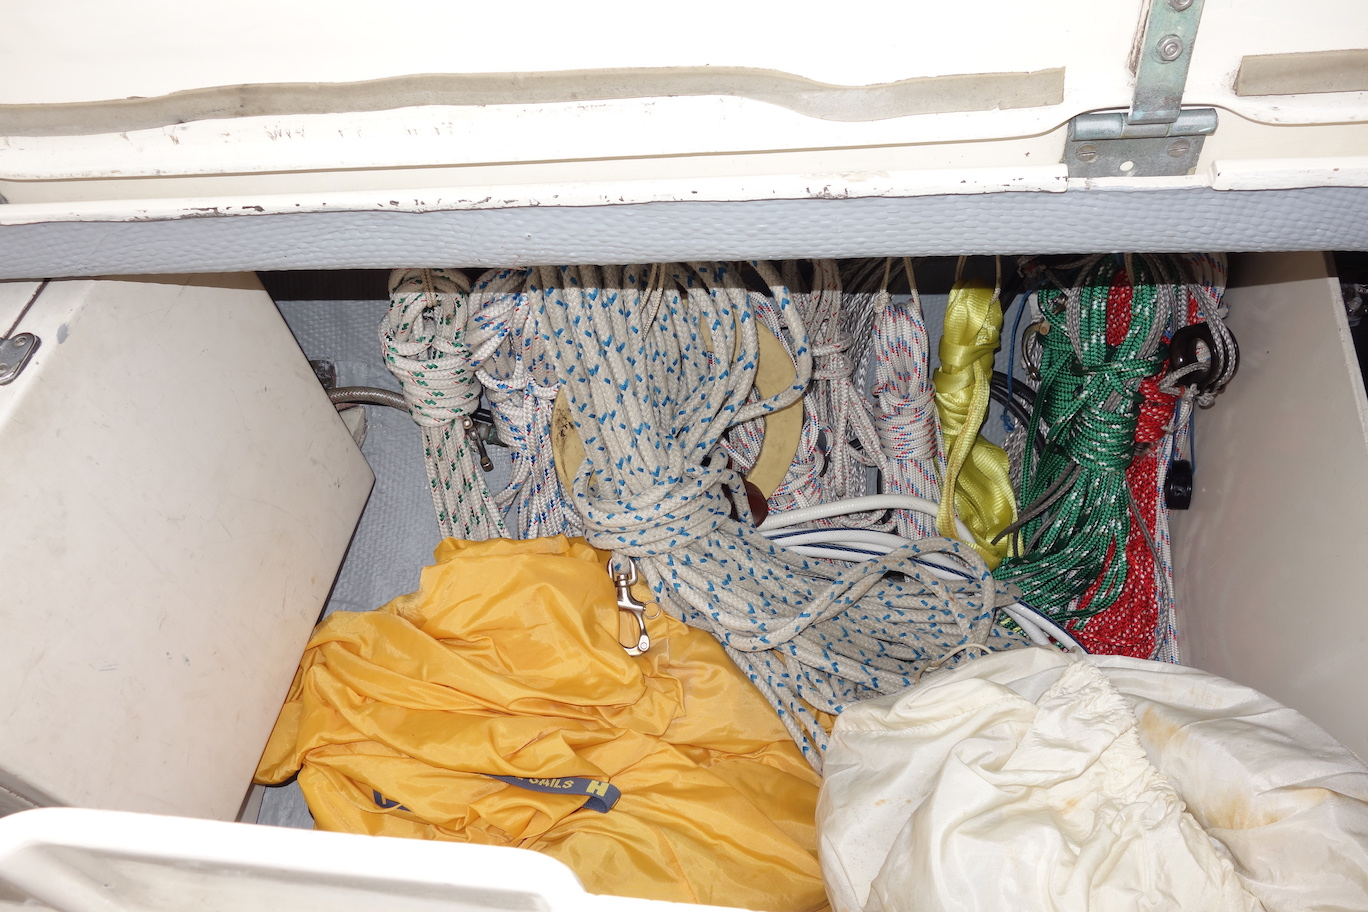 Sail storage in port cockpit locker. Note the very organized line storage on hooks outboard.